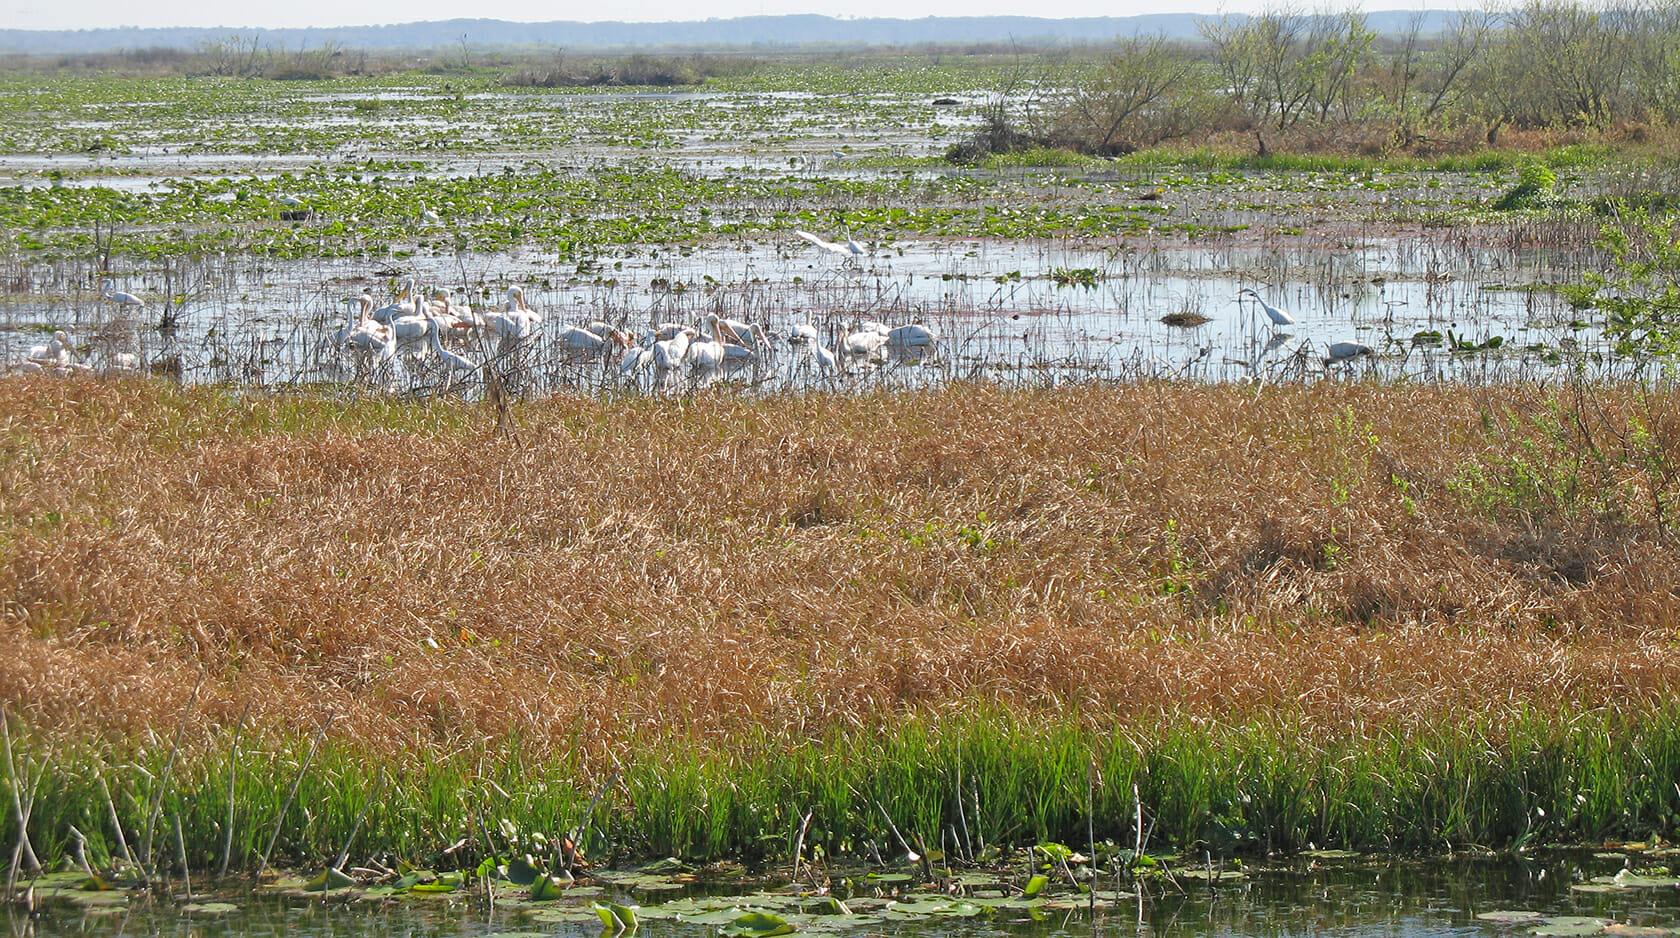 White pelicans at Paynes Prairie